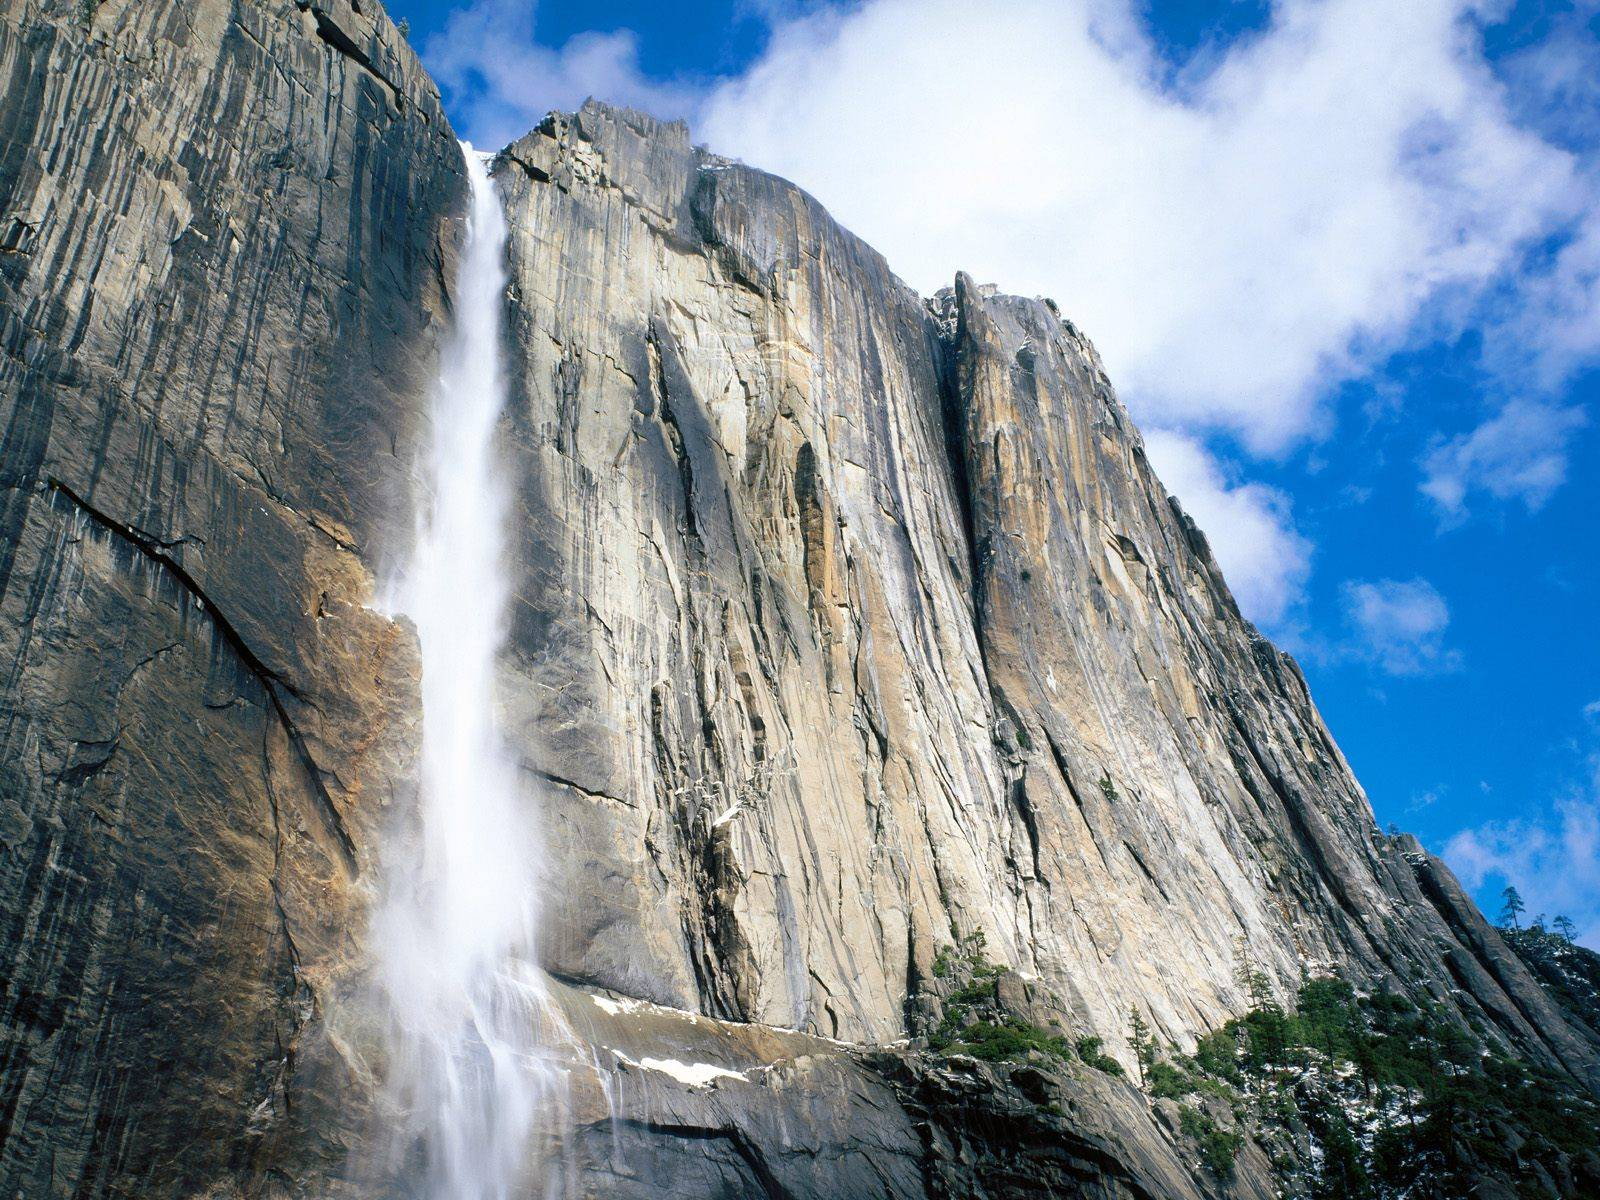 Upper%20Yosemite%20Falls,%20Yosemite%20National%20Park,%20California.jpg